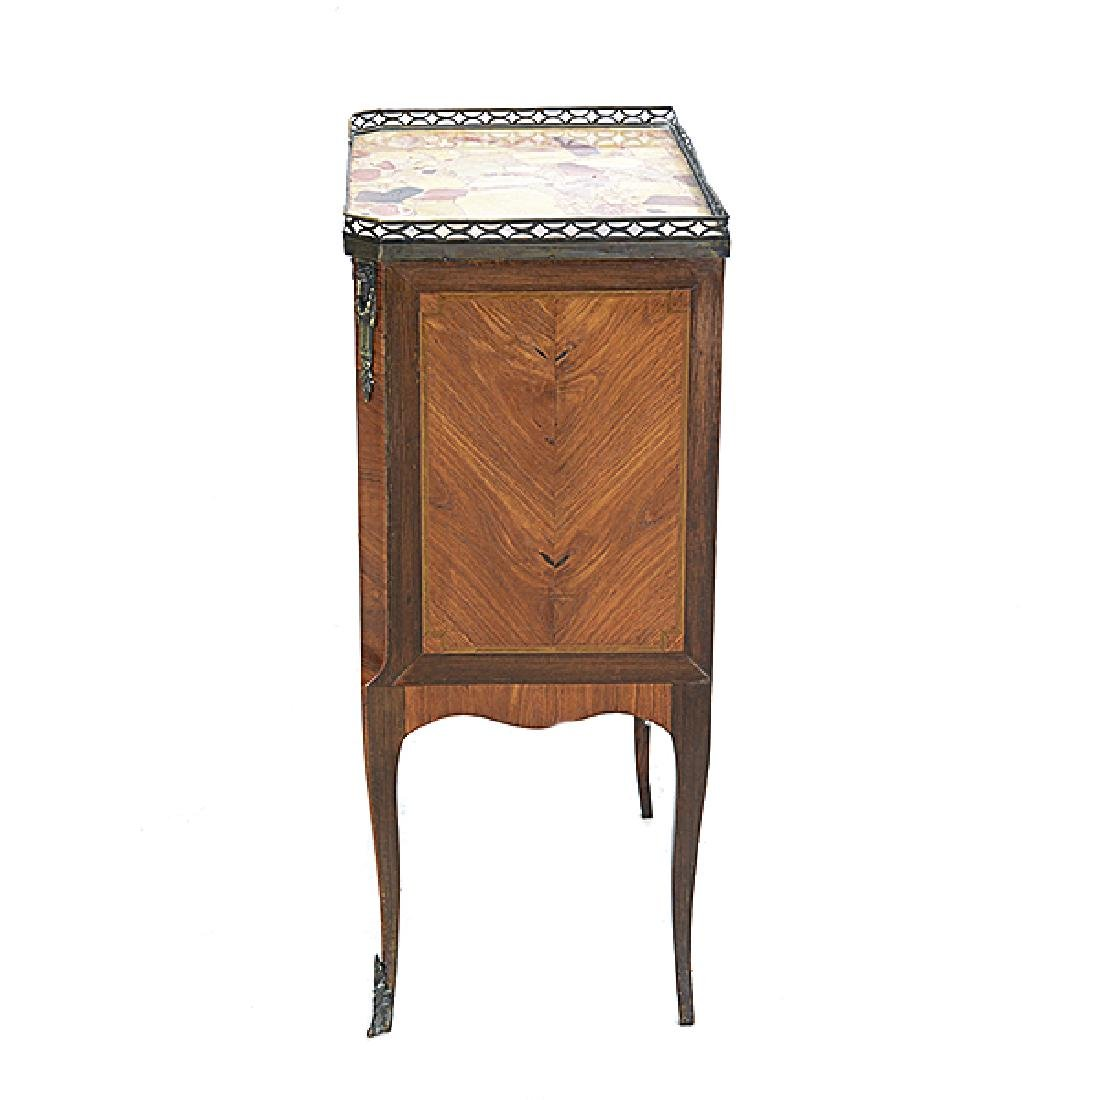 Louis XVI Style Kingwood Marquetry Commode with Breche - 5